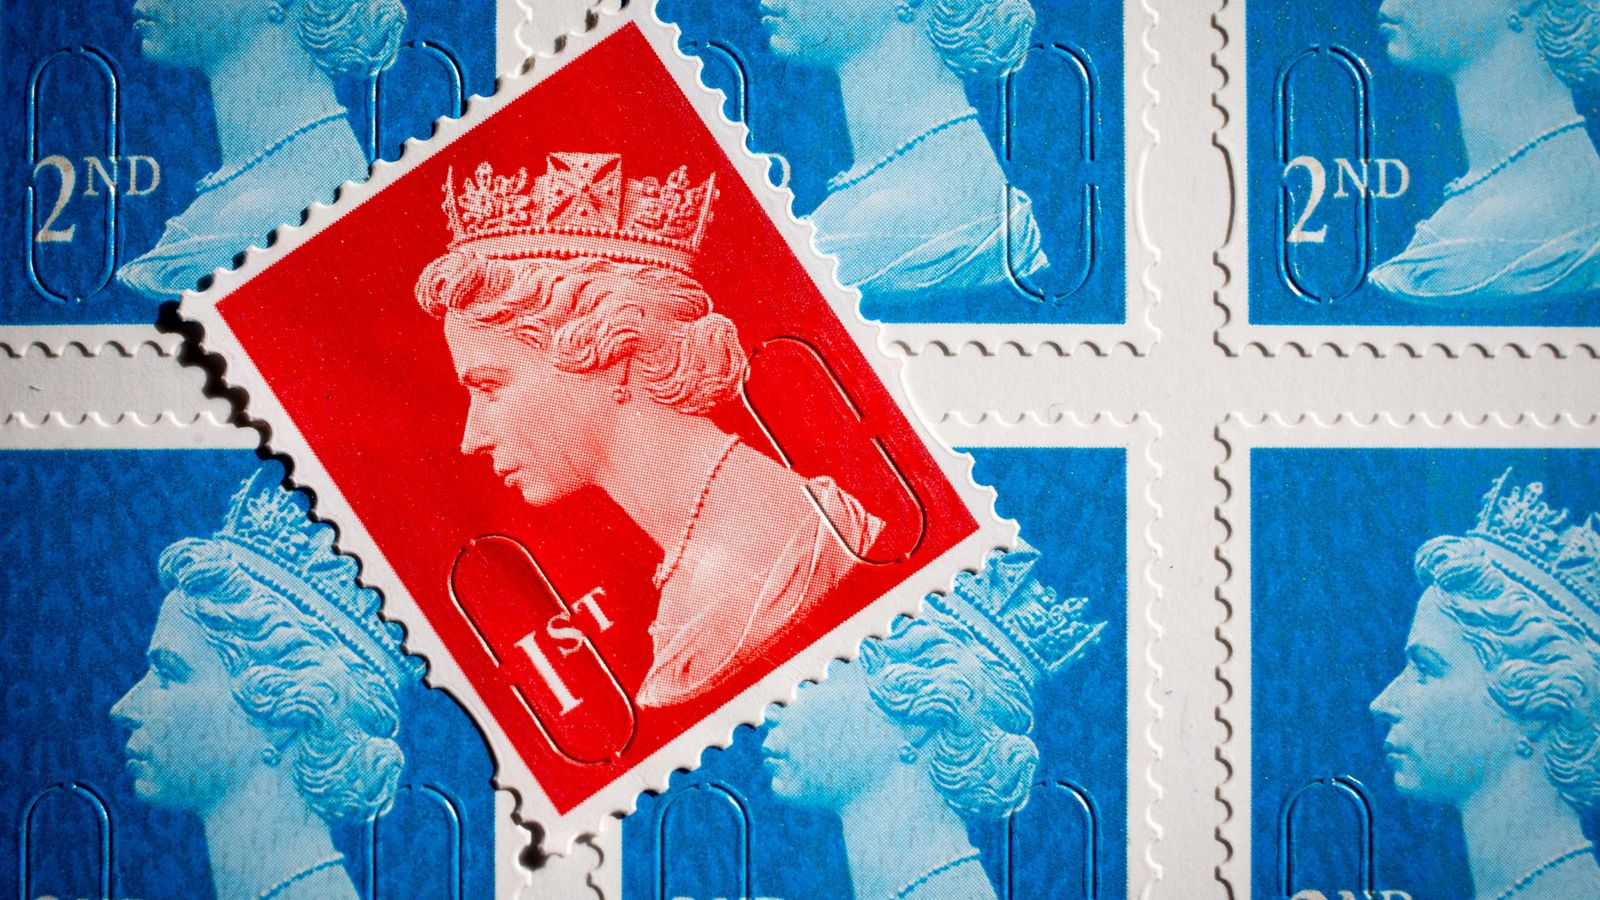 Royal Mail raises stamp prices to 'maintain quality of service'